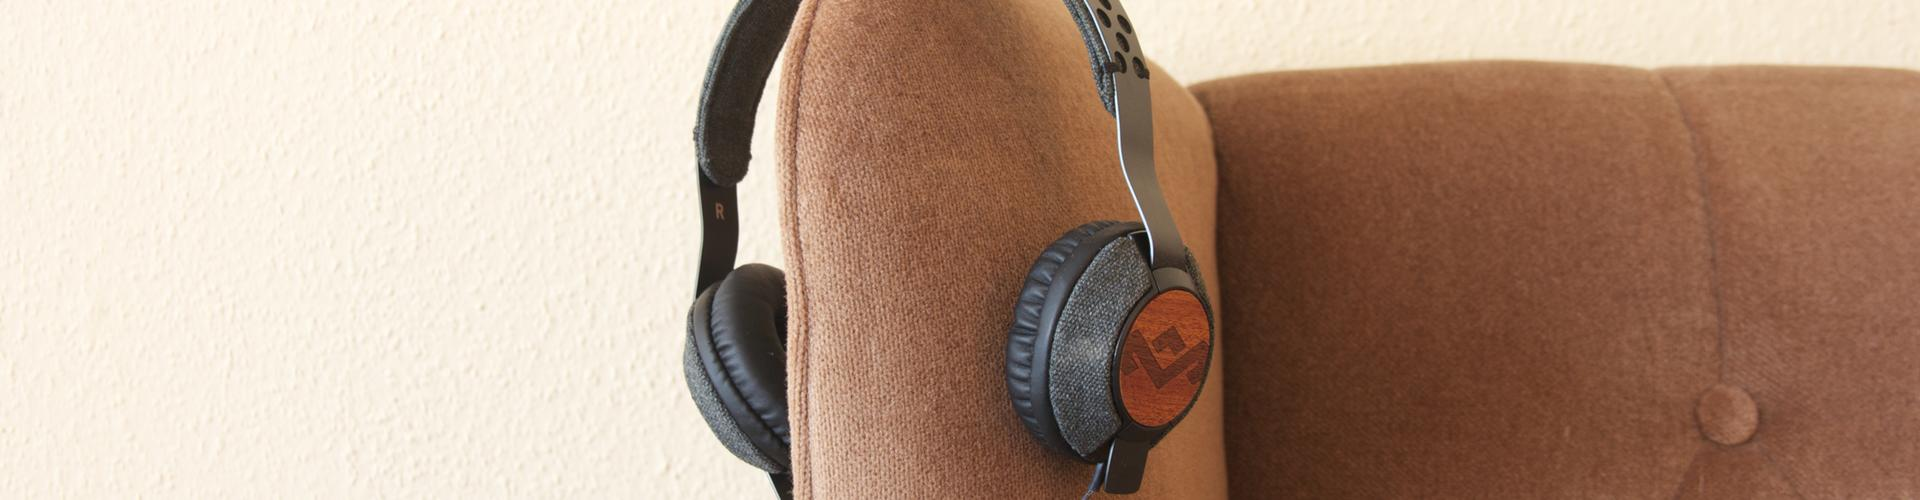 House of Marley Liberate Headphones: Stylish Bass-Heavy Sound